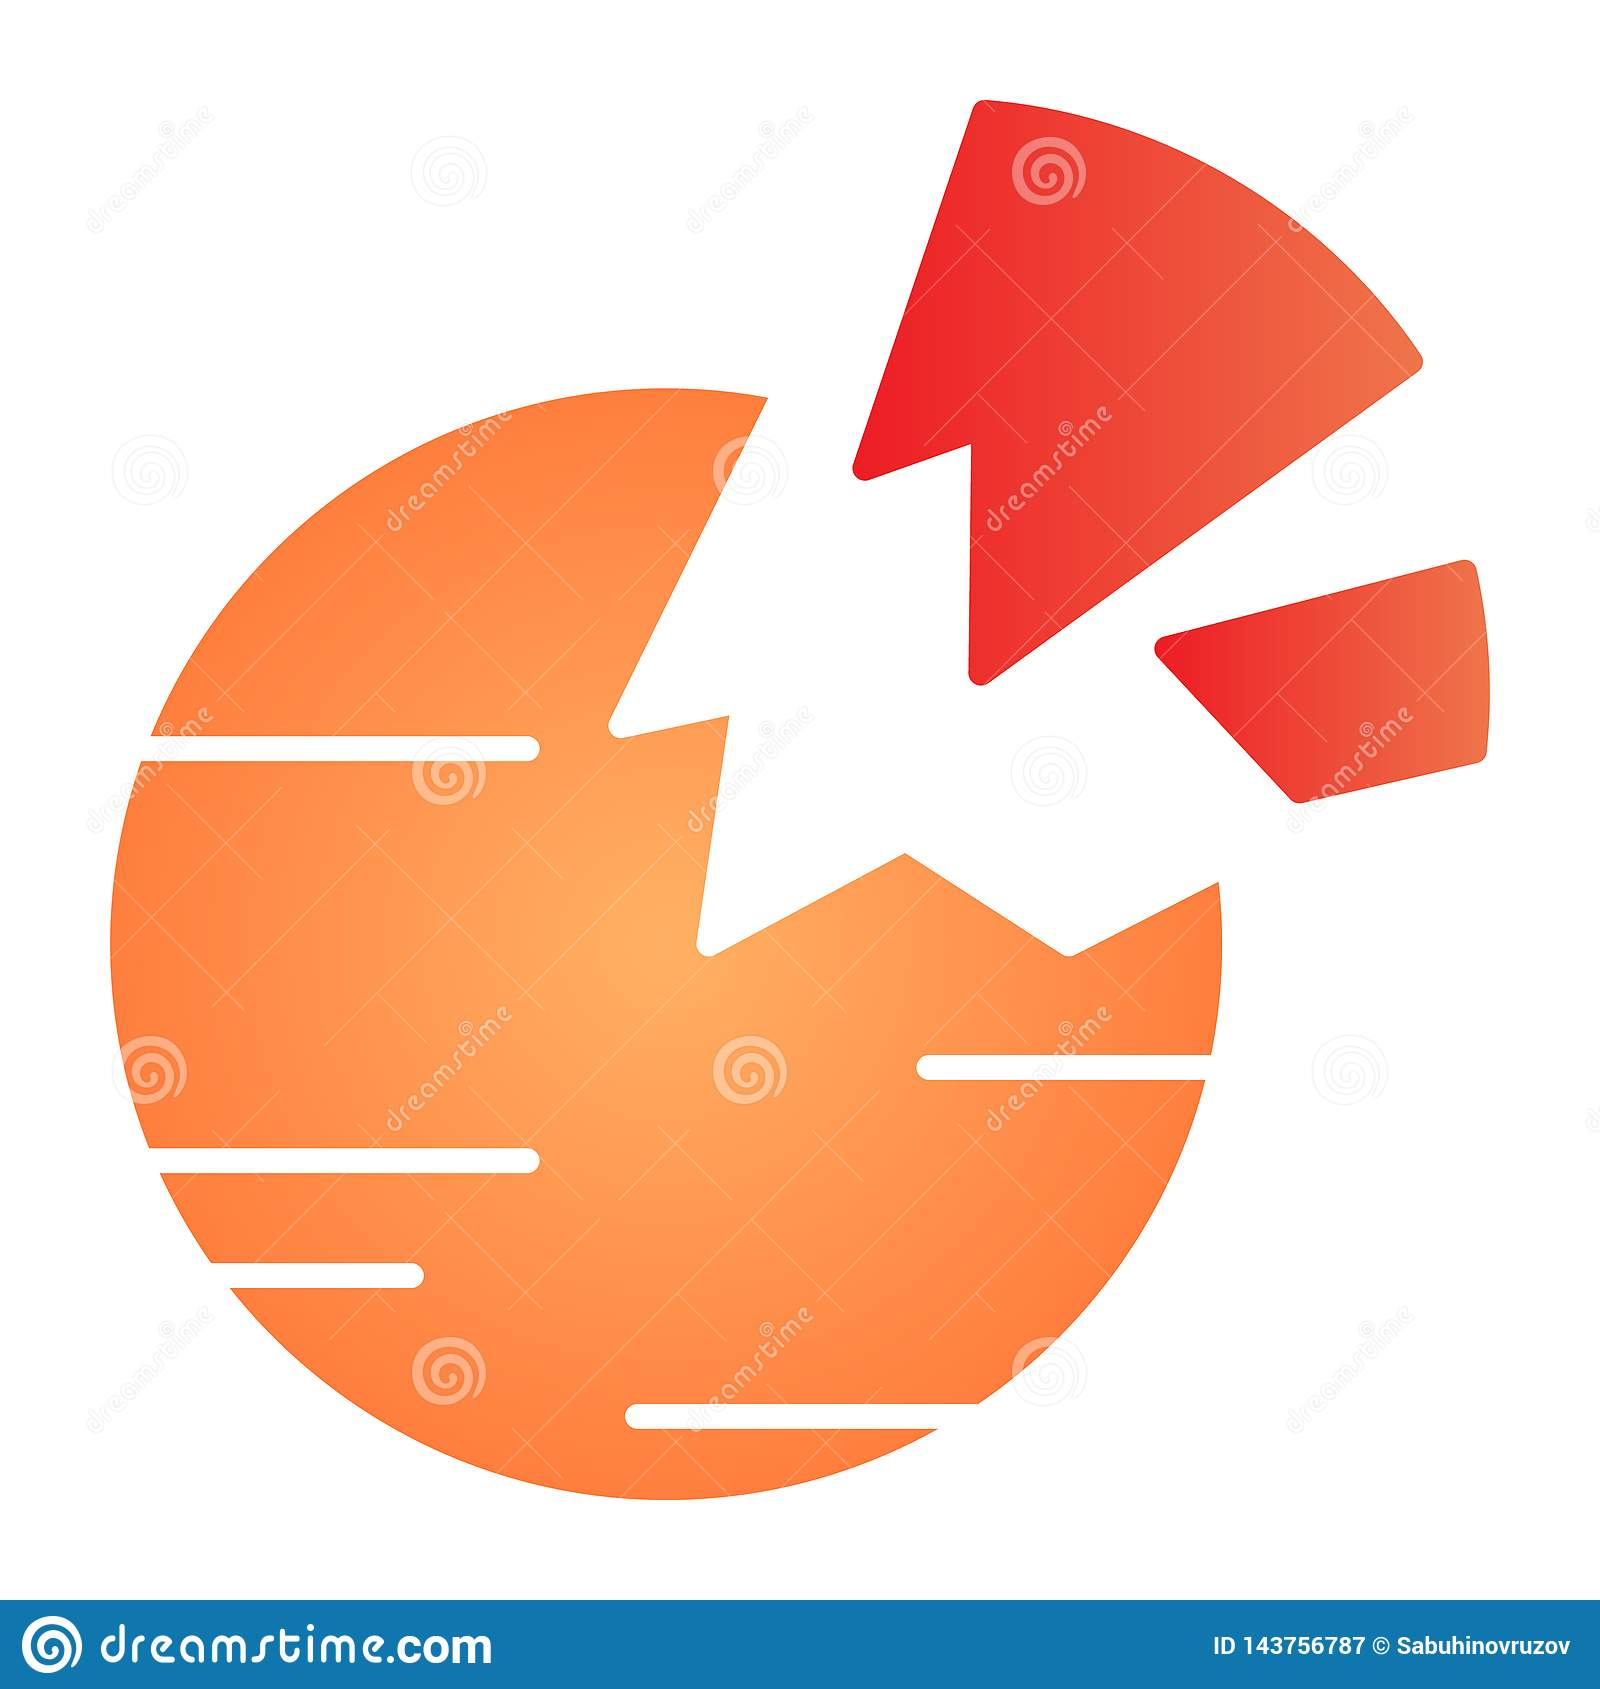 Destroyed planet flat icon. Broken planet color icons in trendy flat style. Space gradient style design, designed for